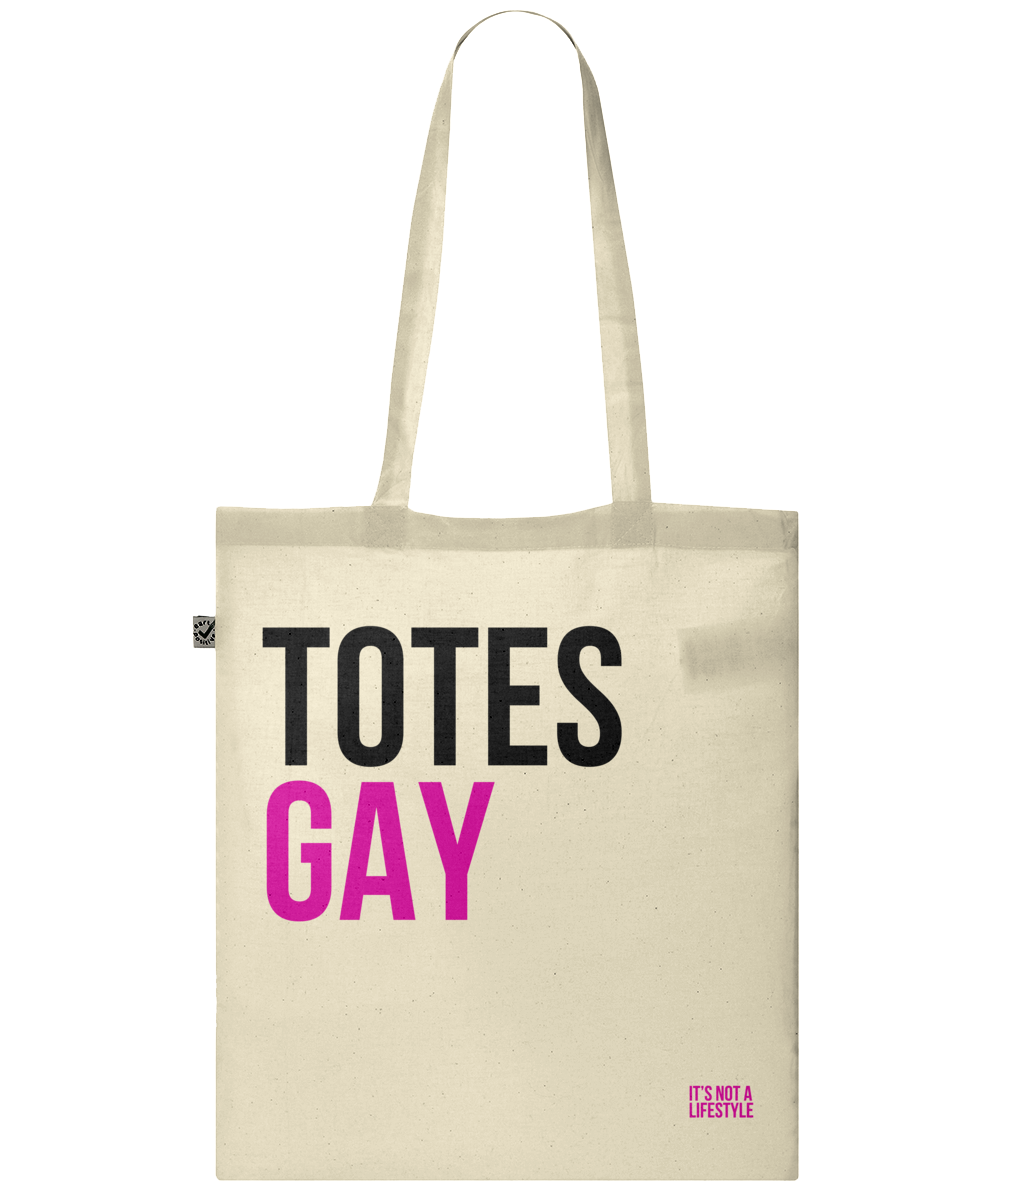 e1bda2dff218 Totes Gay Large Tote Bag – It s Not A Lifestyle